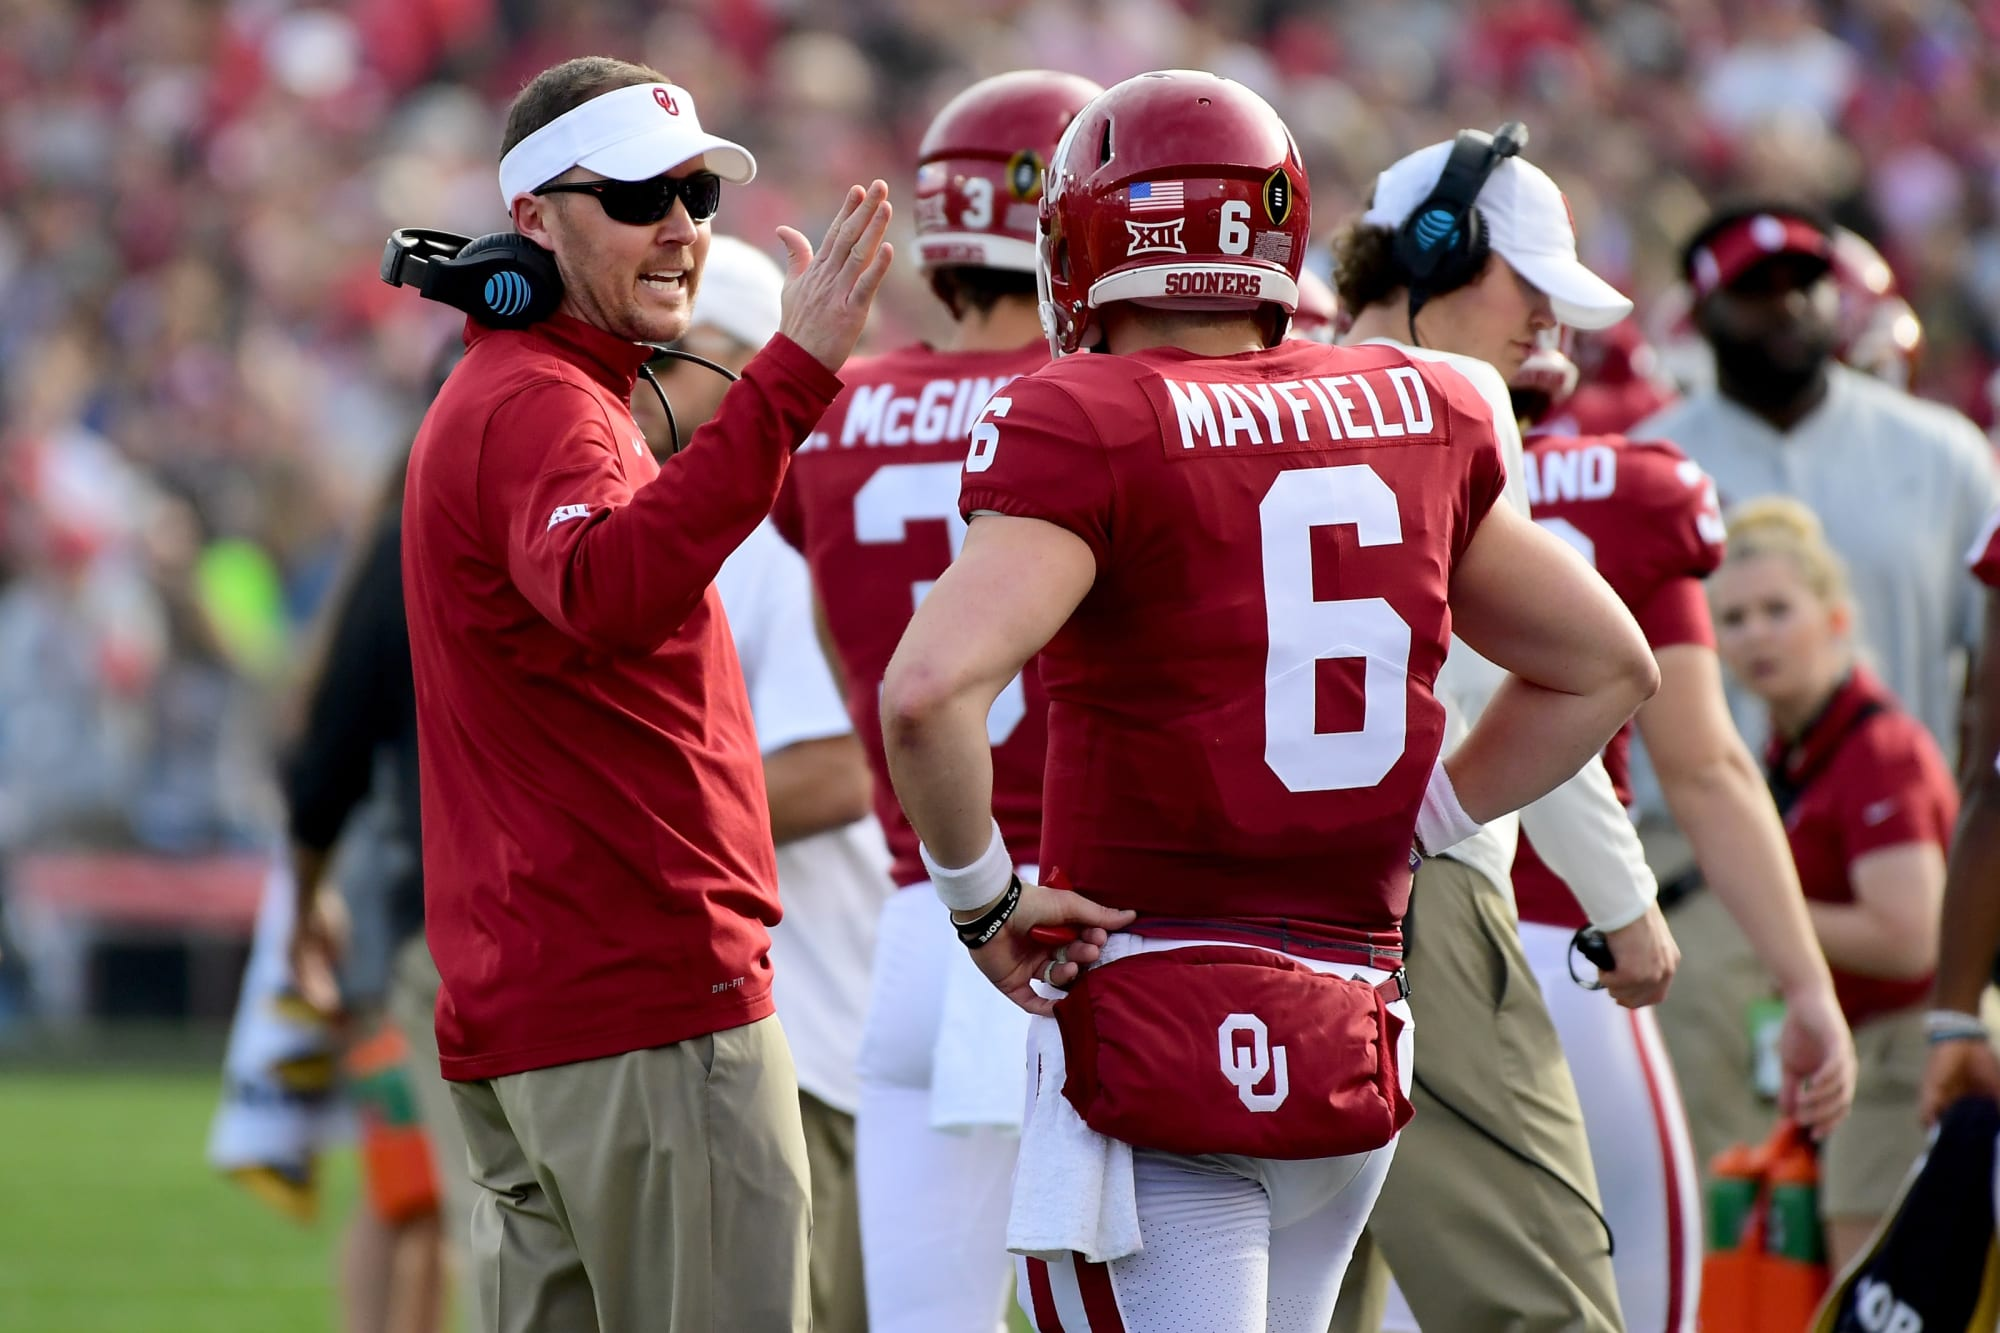 Oklahoma football: Lincoln Riley trolls former Sooner Baker Mayfield